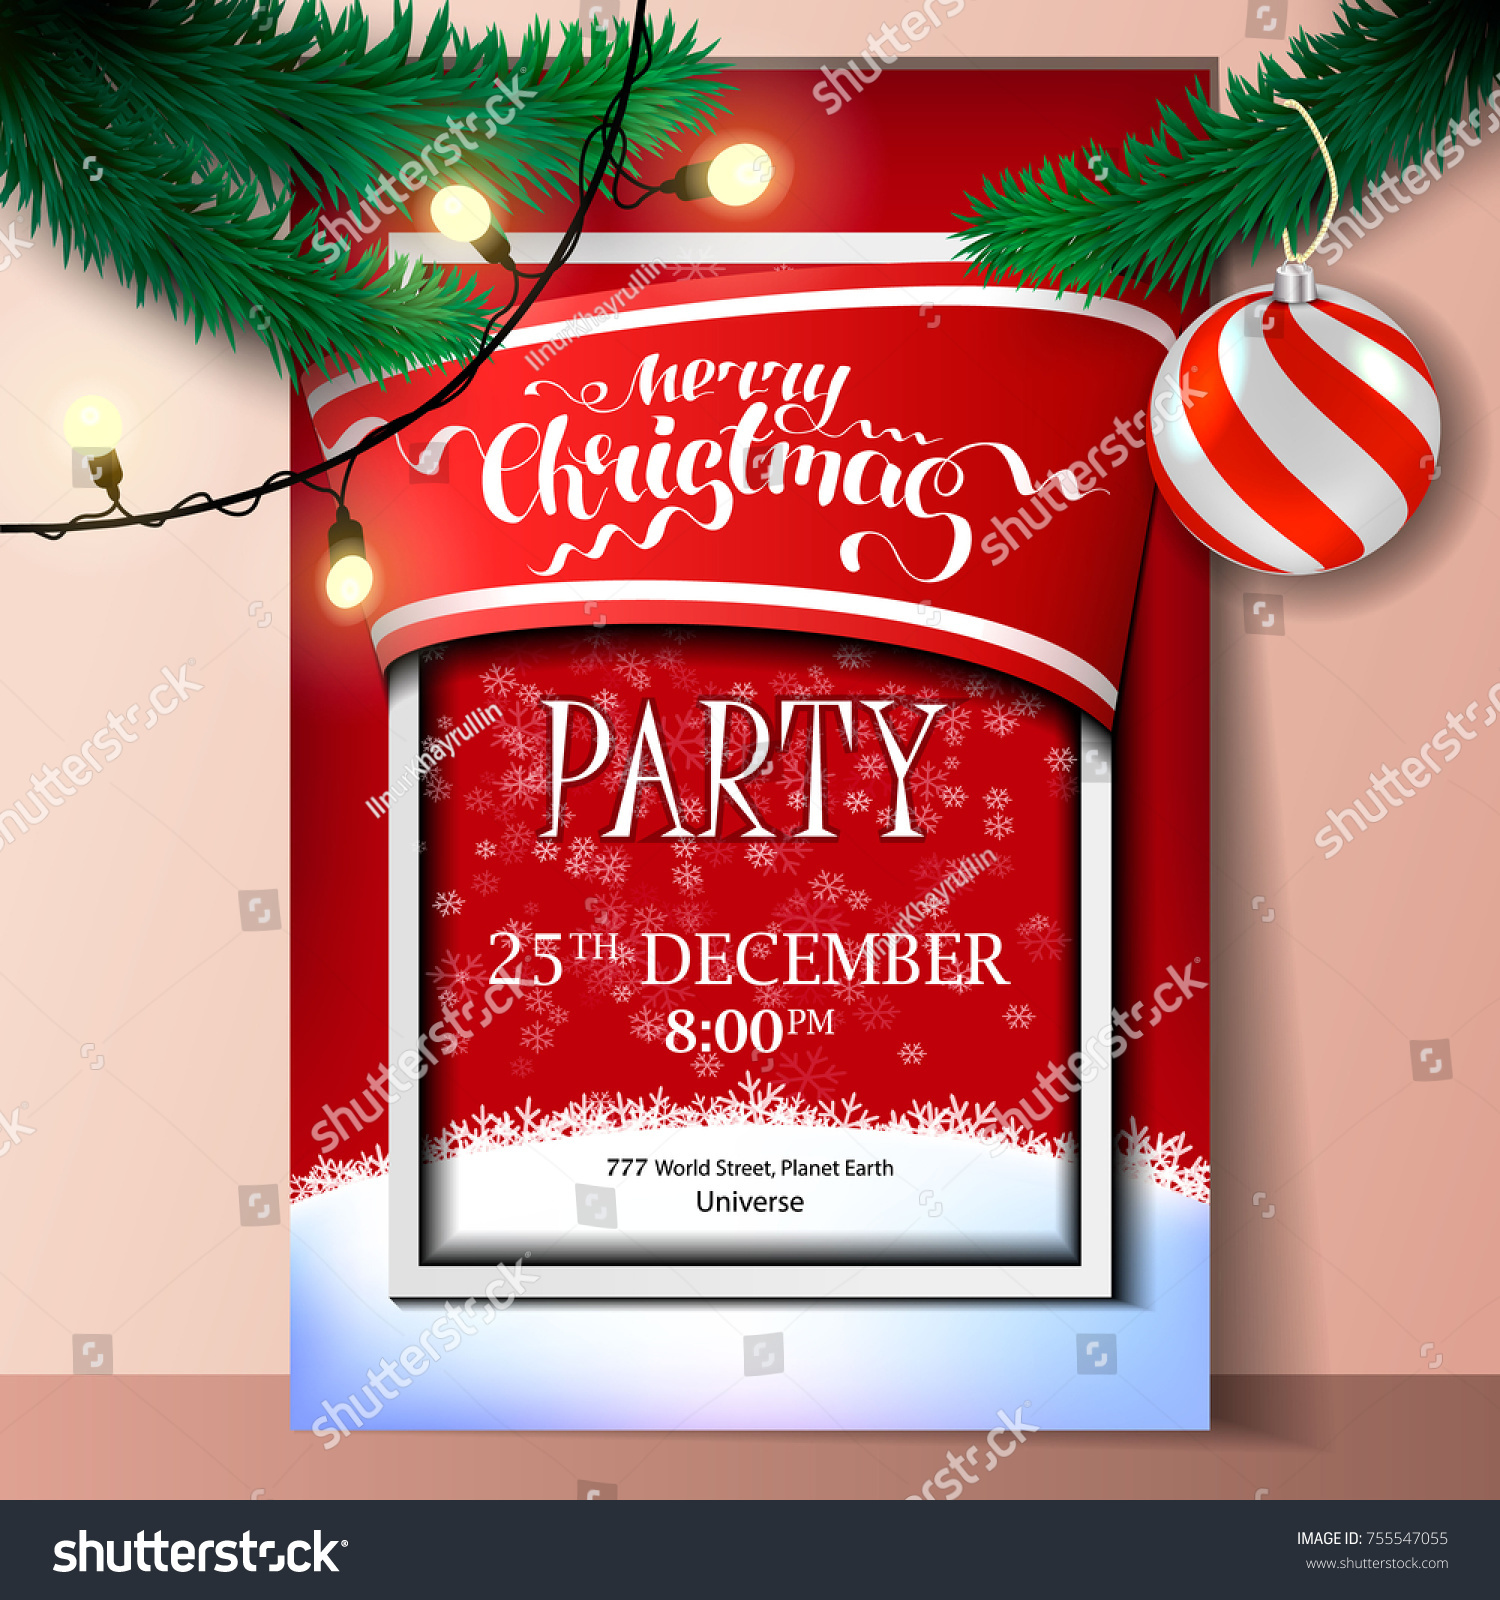 Merry Christmas Party Invitation Card Stock Vector (Royalty Free) 755547055